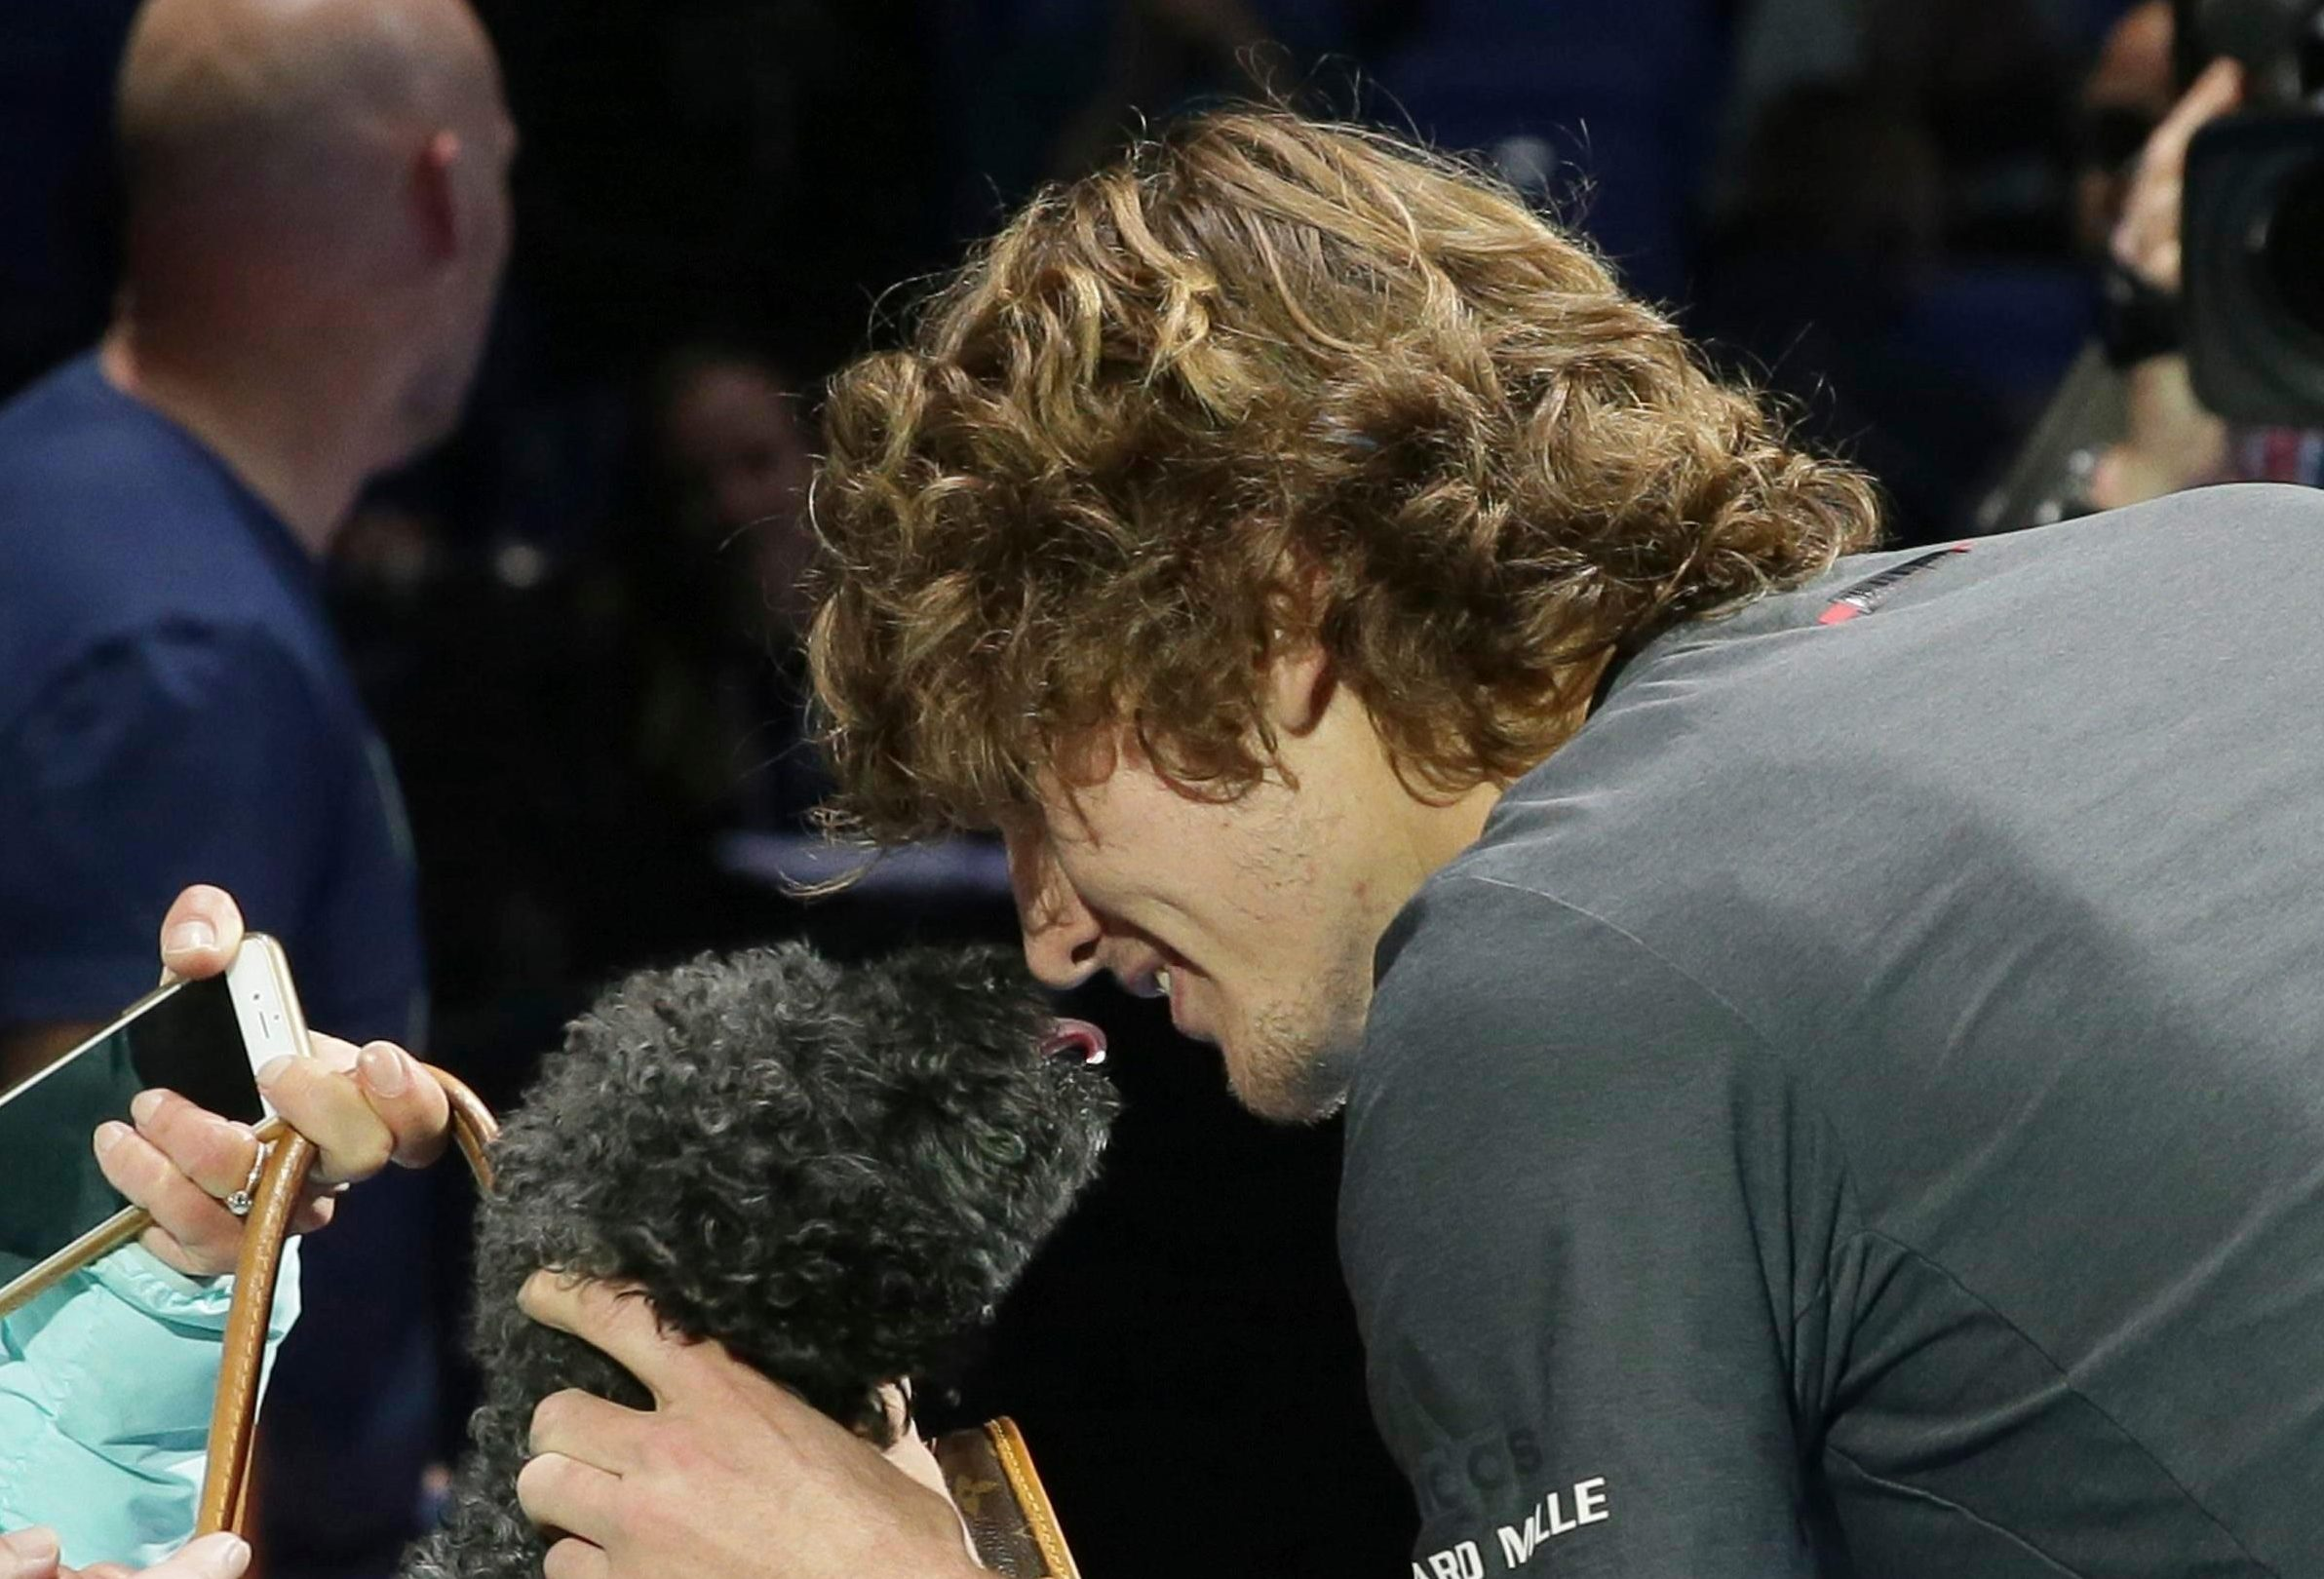 Alex Zverev kisses the family puppy after beating Novak Djokovic to clinch the ATP Finals crown - having shown he should be able to winalot more in the future